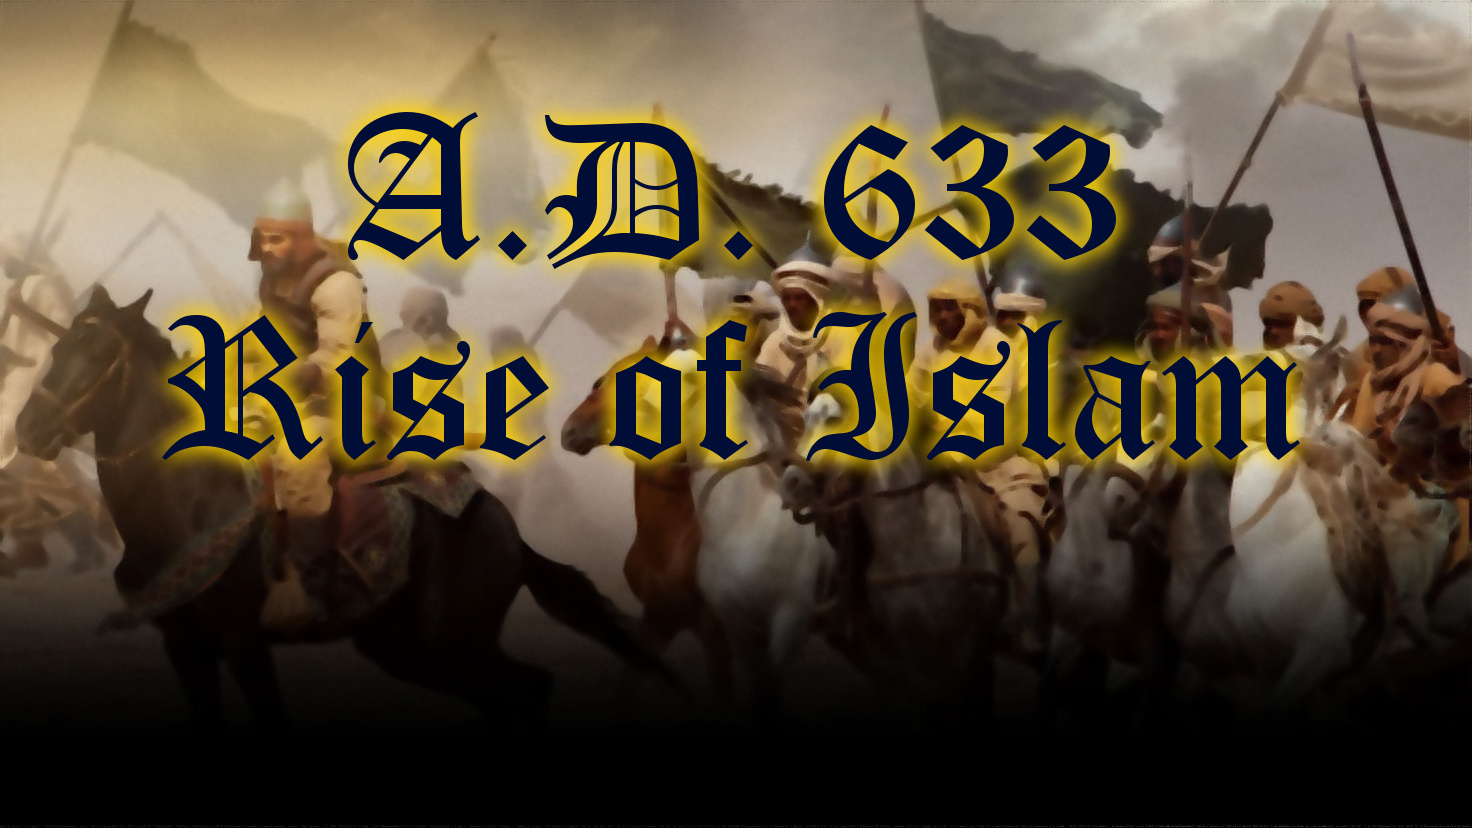 A D  633: Rise of Islam mod for Crusader Kings II - Mod DB